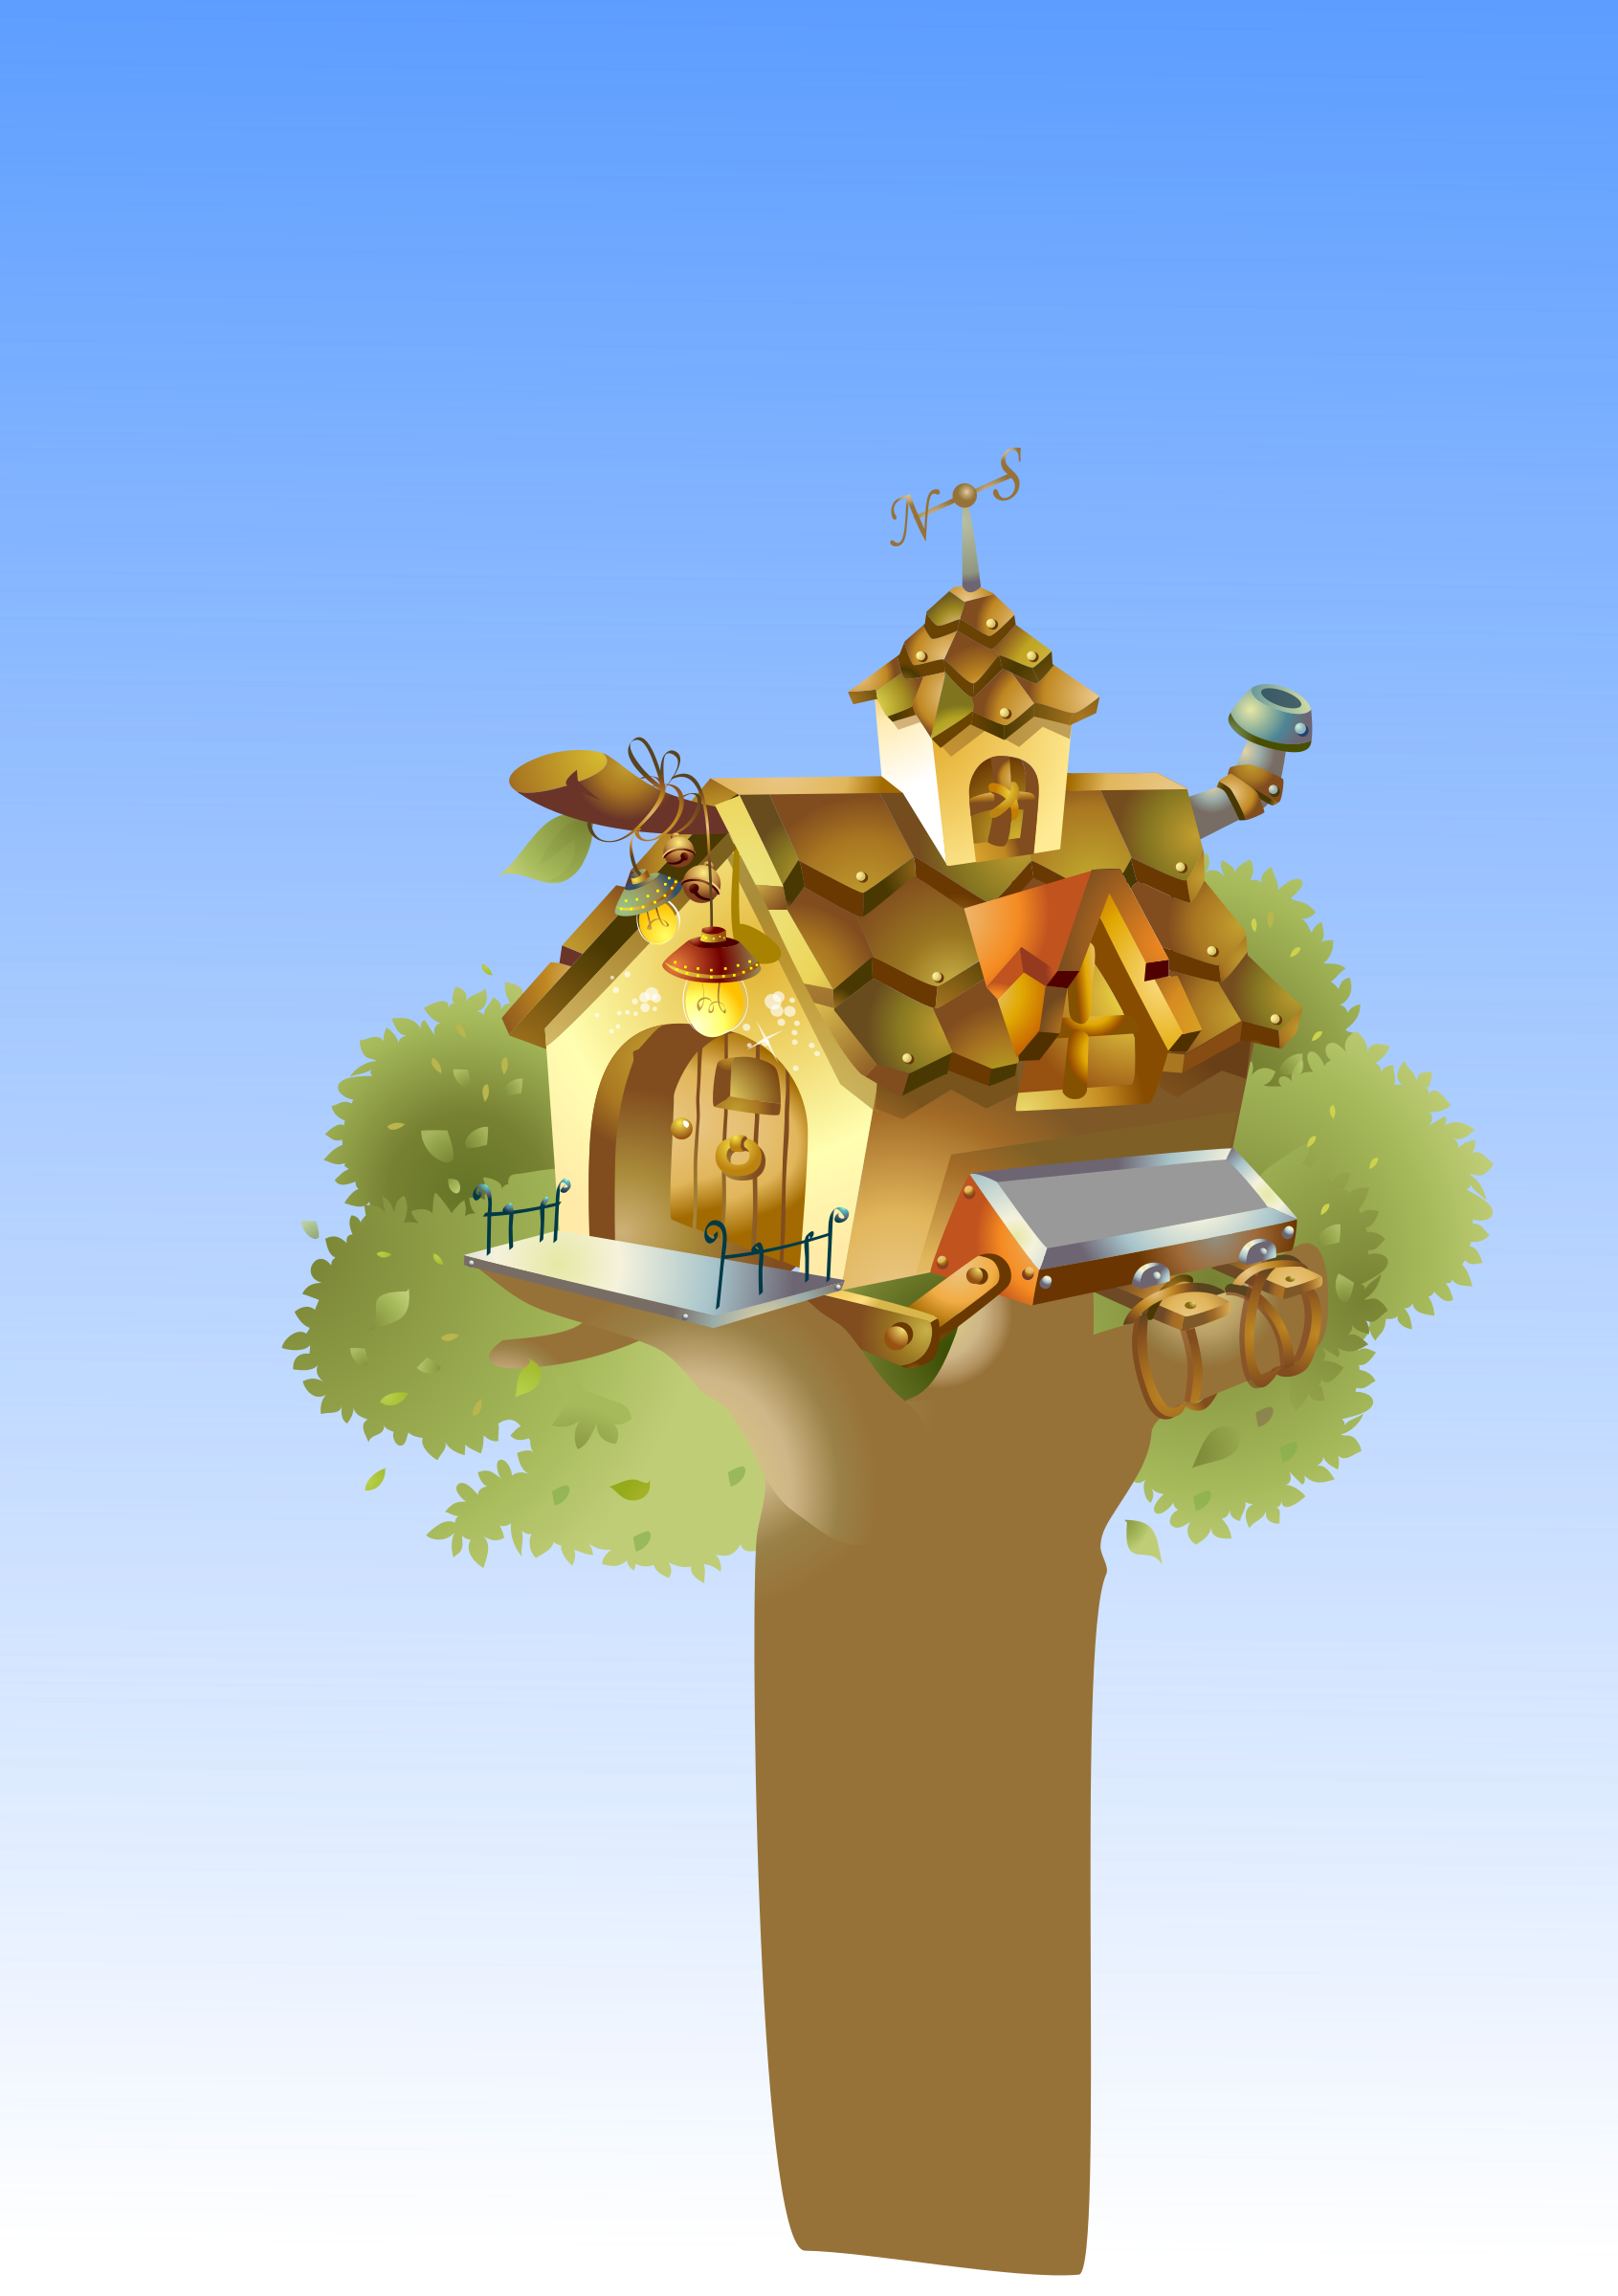 house in tree by sammo241